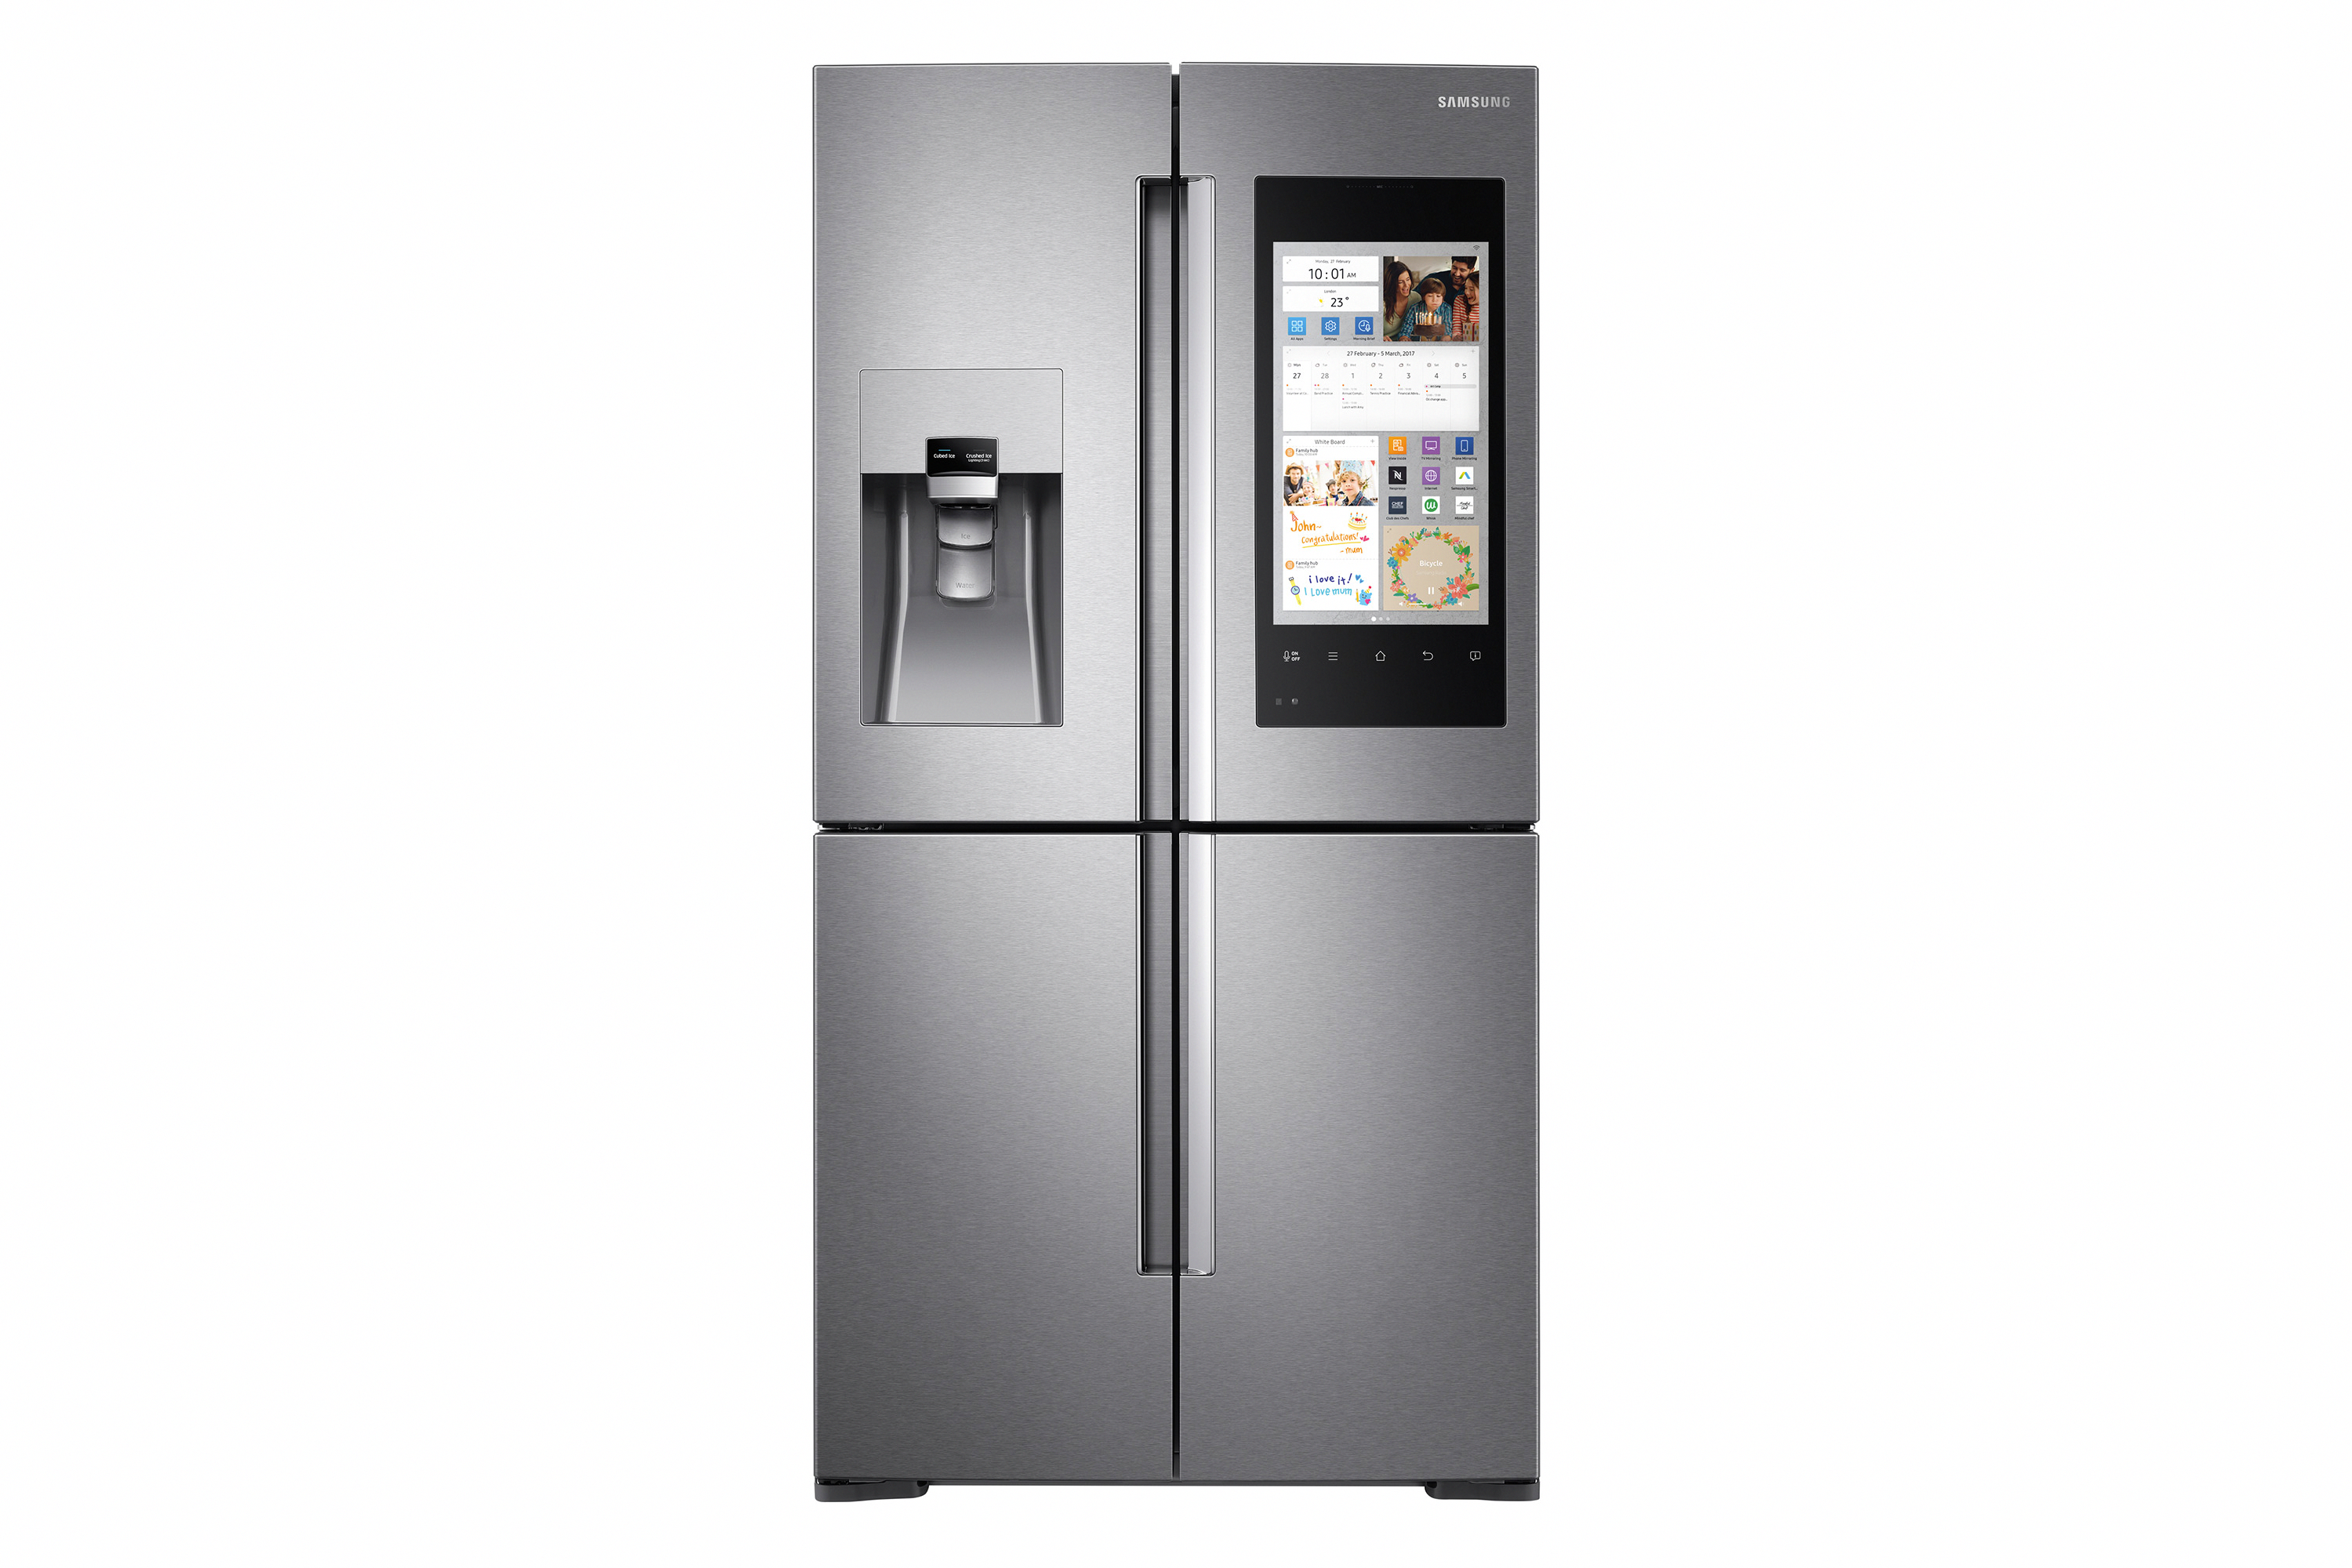 Home Appliances App Homeappliancesandelectronics Homeappliancesexhibition In 2020 Multi Door Fridge Samsung Family Hub Fridge Best Fridge Freezer